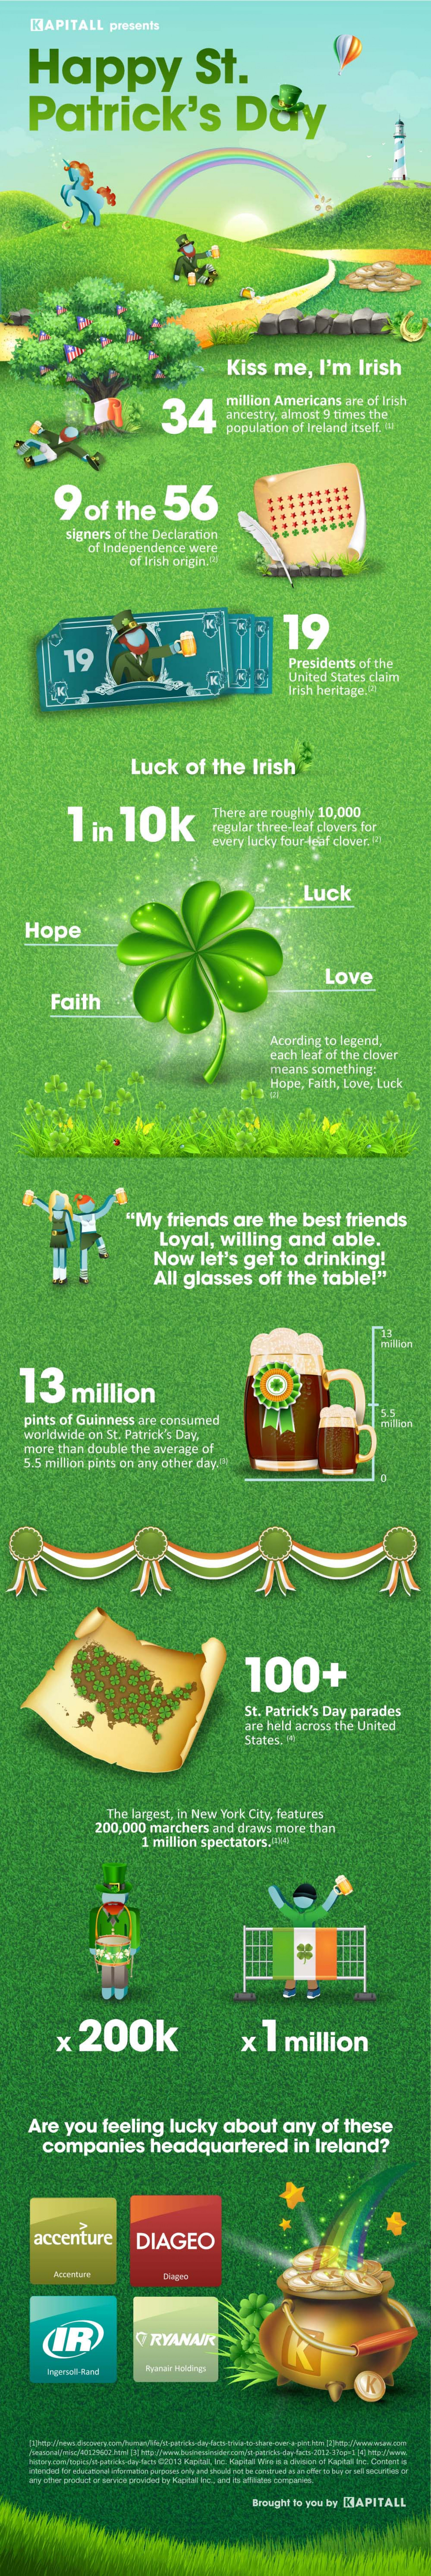 Happy St. Patrick's Day Infographic